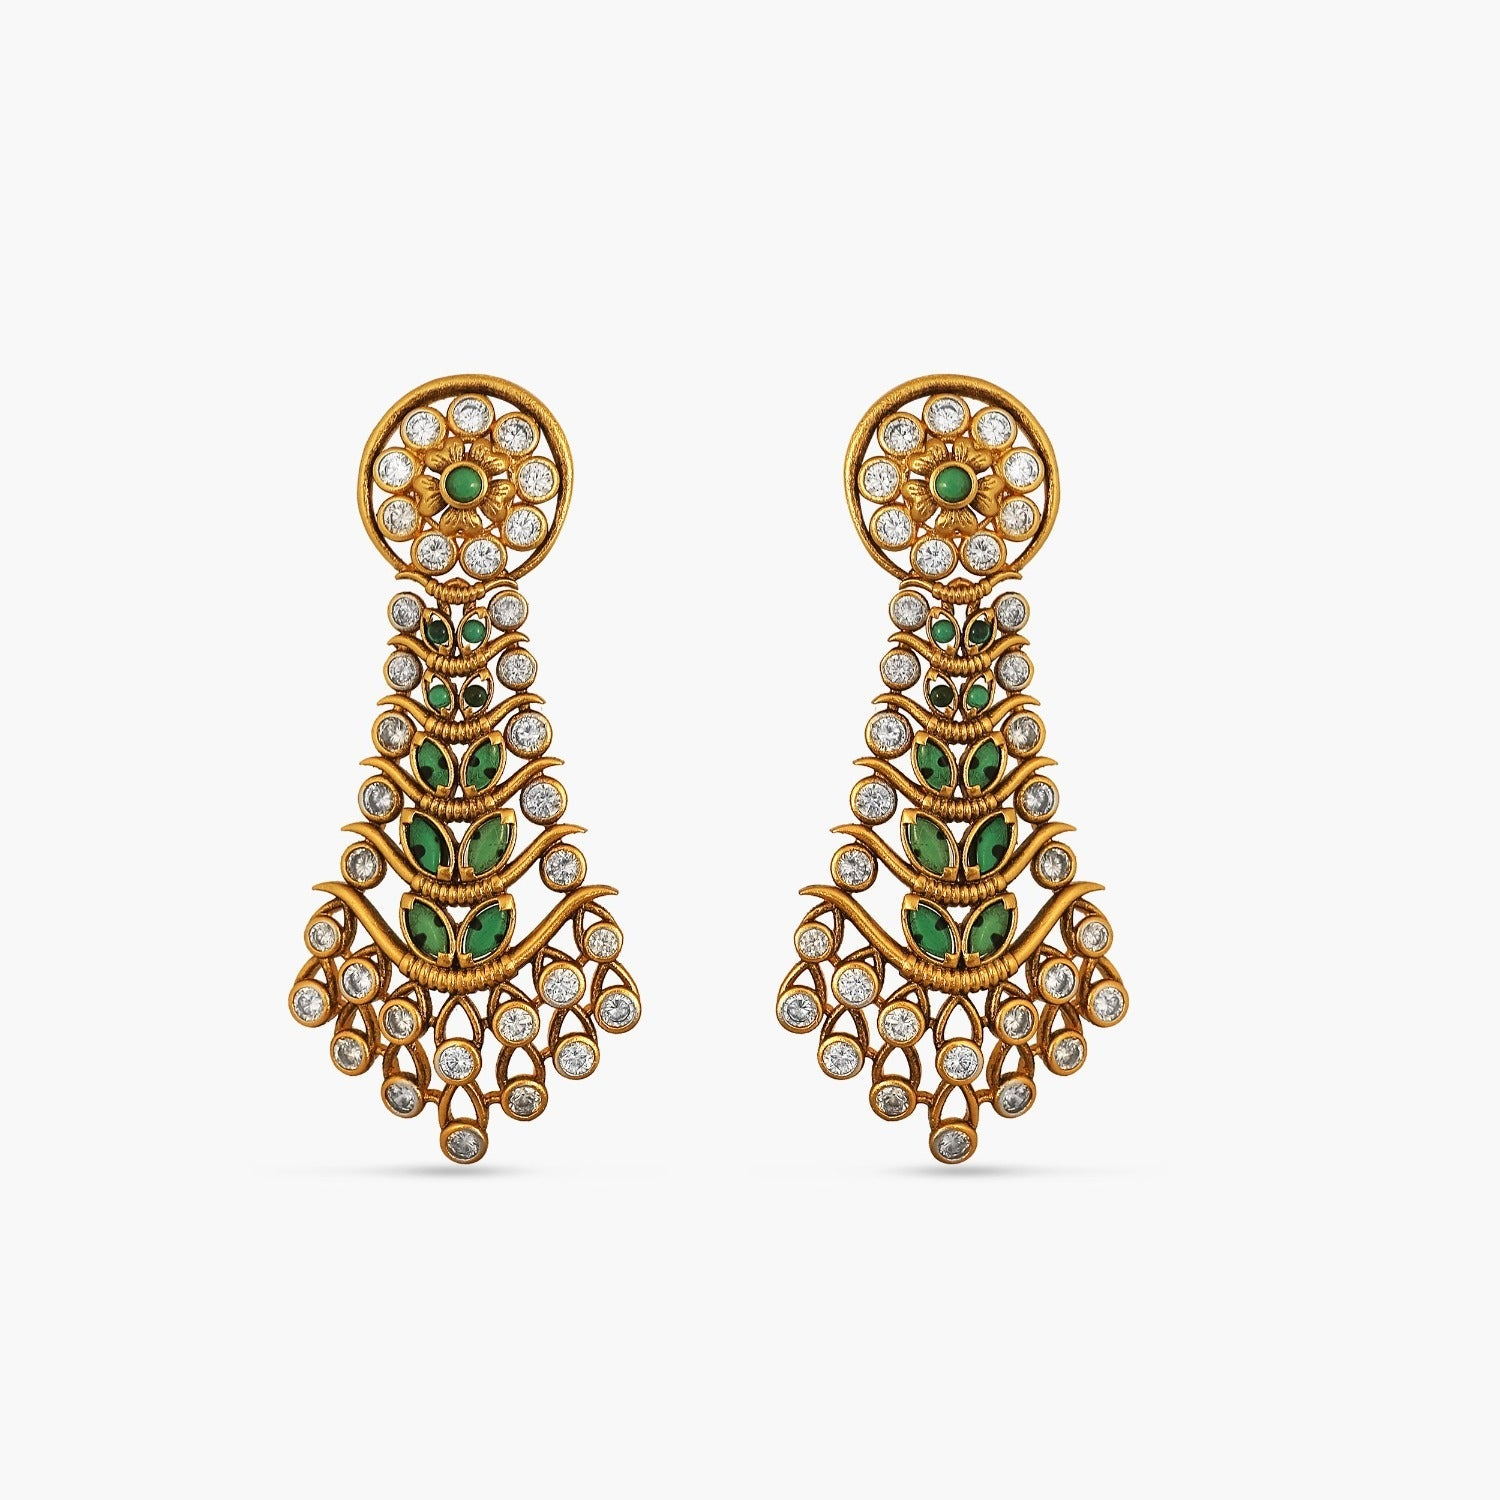 Shuchi Antique Earrings